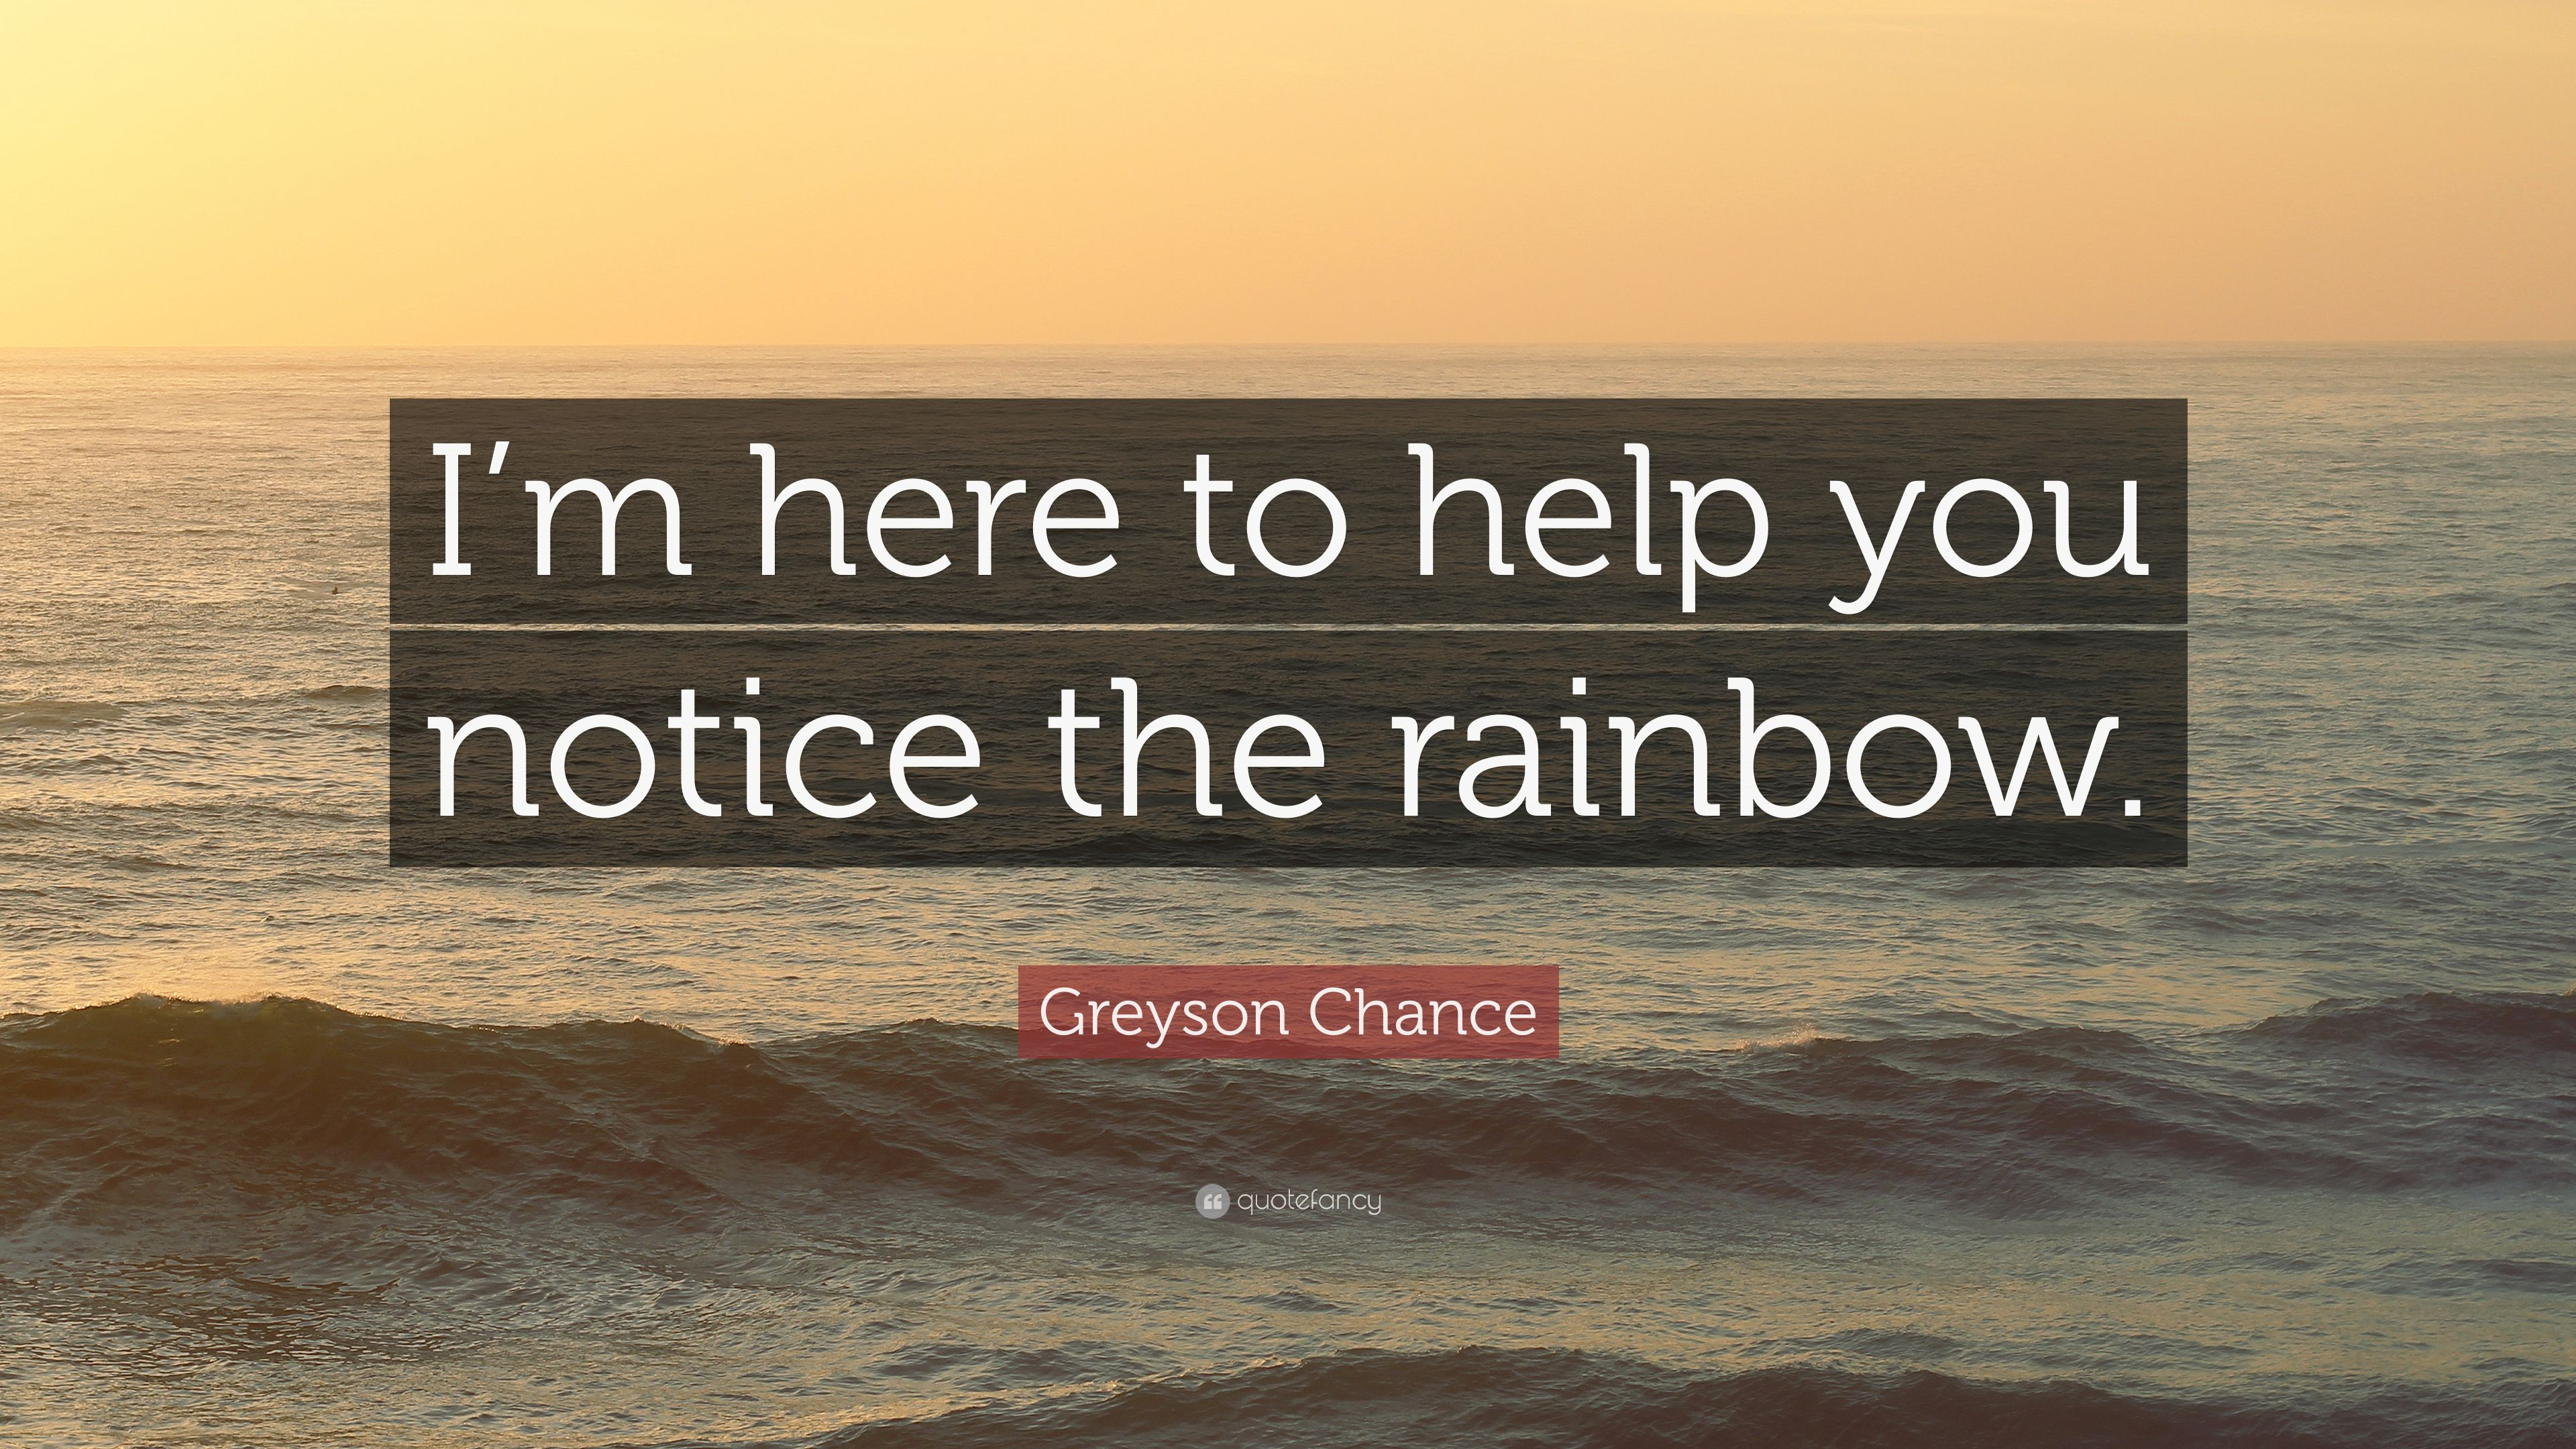 greyson chance quote im here to help you notice the rainbow